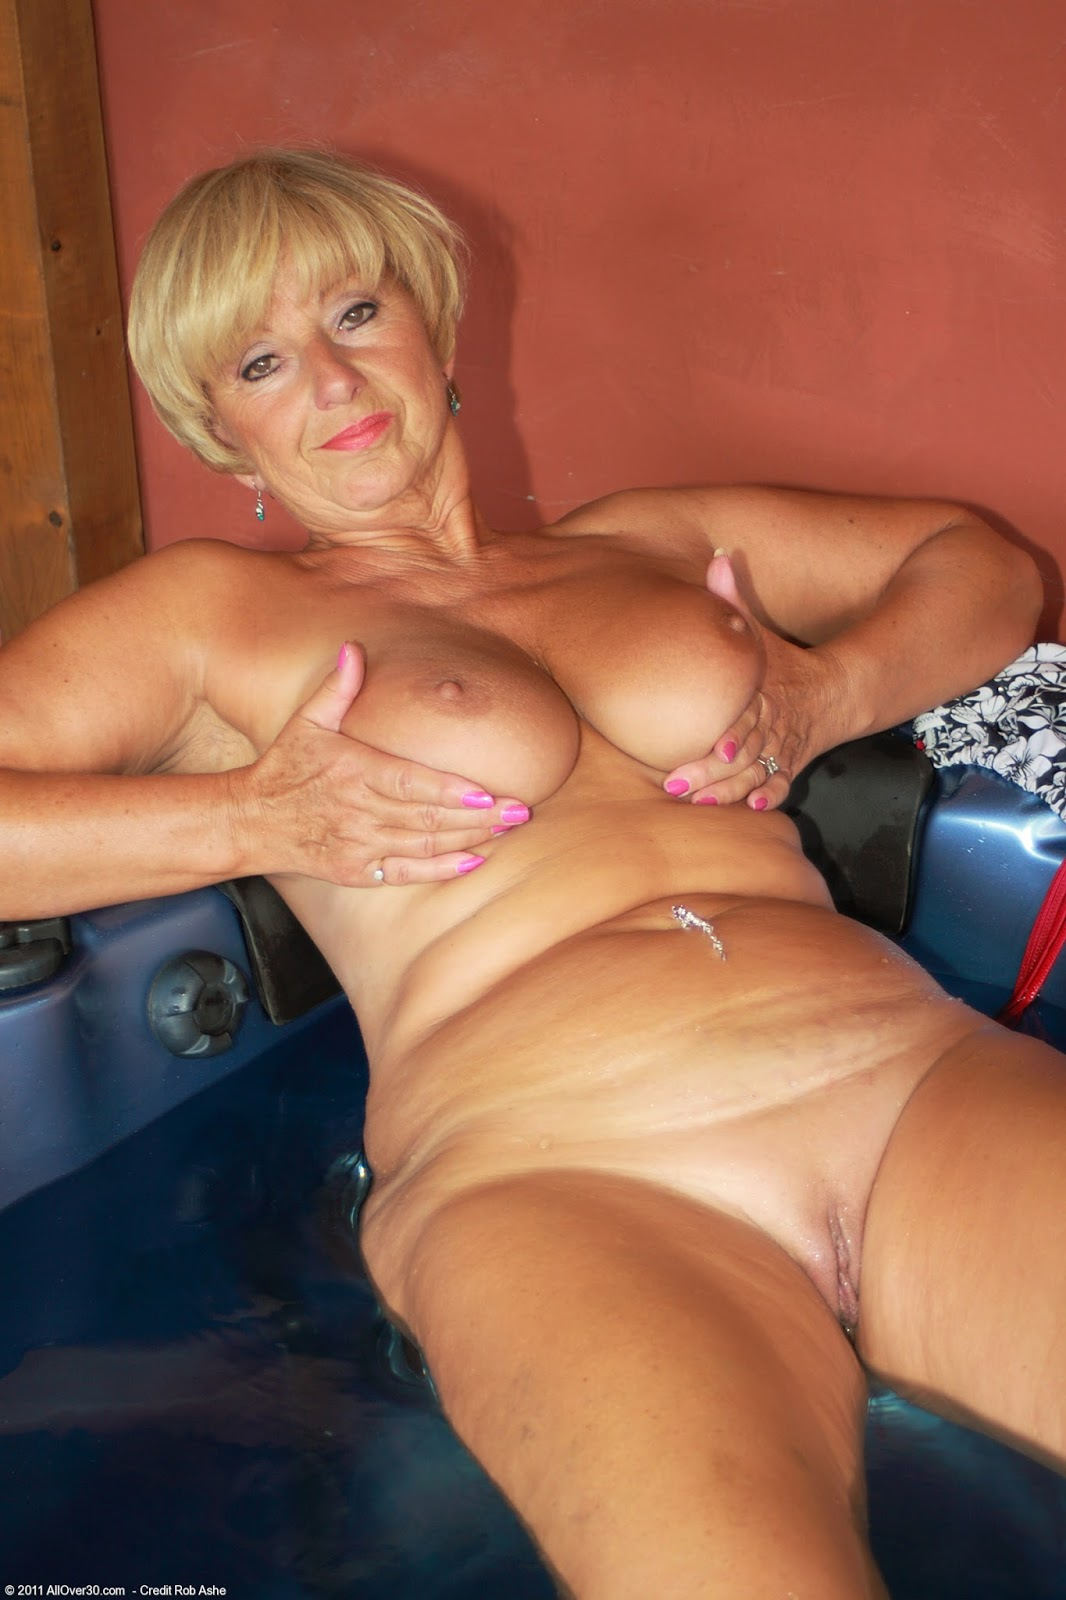 88 year old women fucked - 3 5